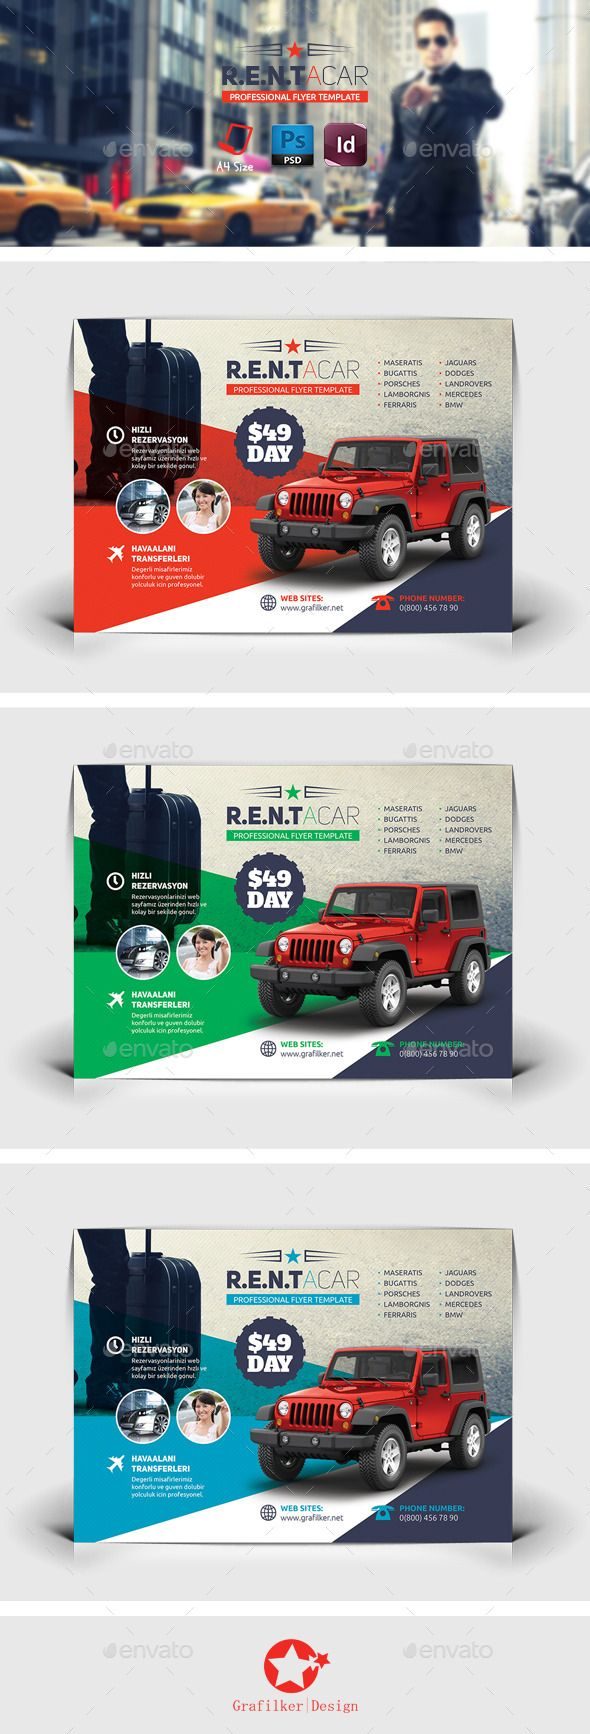 Rent A Car Flyer Template PSD | Buy and Download: http://graphicriver.net/item/rent-a-car-flyer-templates/8838464?WT.ac=category_thumb&WT.z_author=grafilker&ref=ksioks